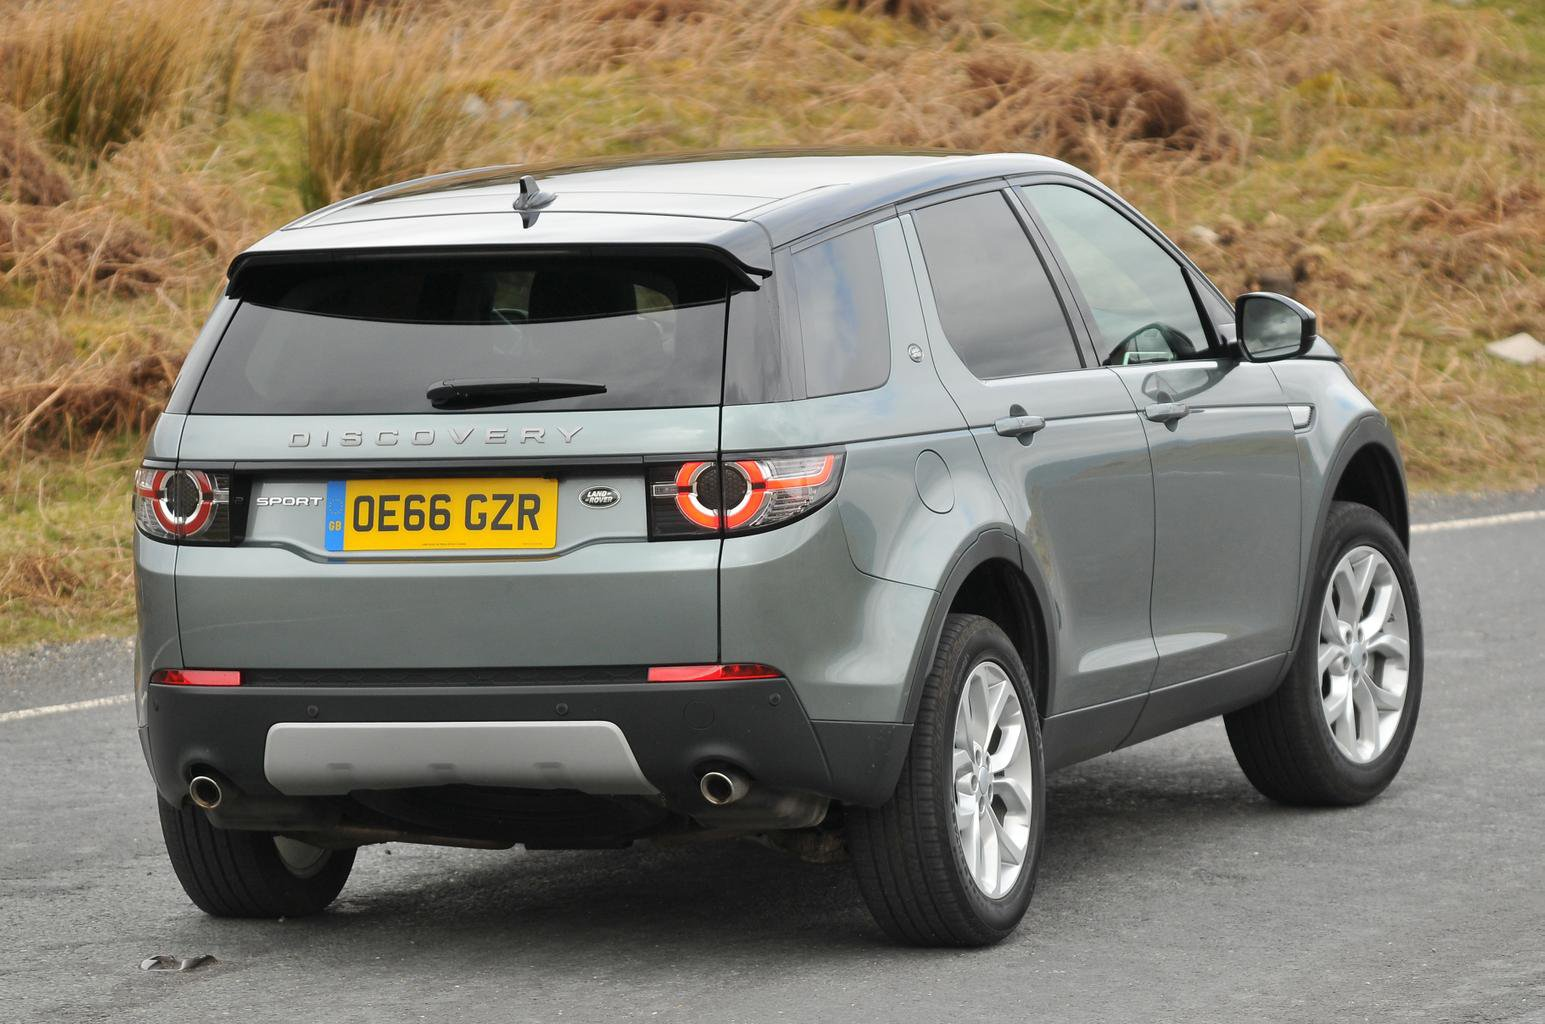 BMW X3 vs Jaguar F-Pace vs Land Rover Discovery Sport